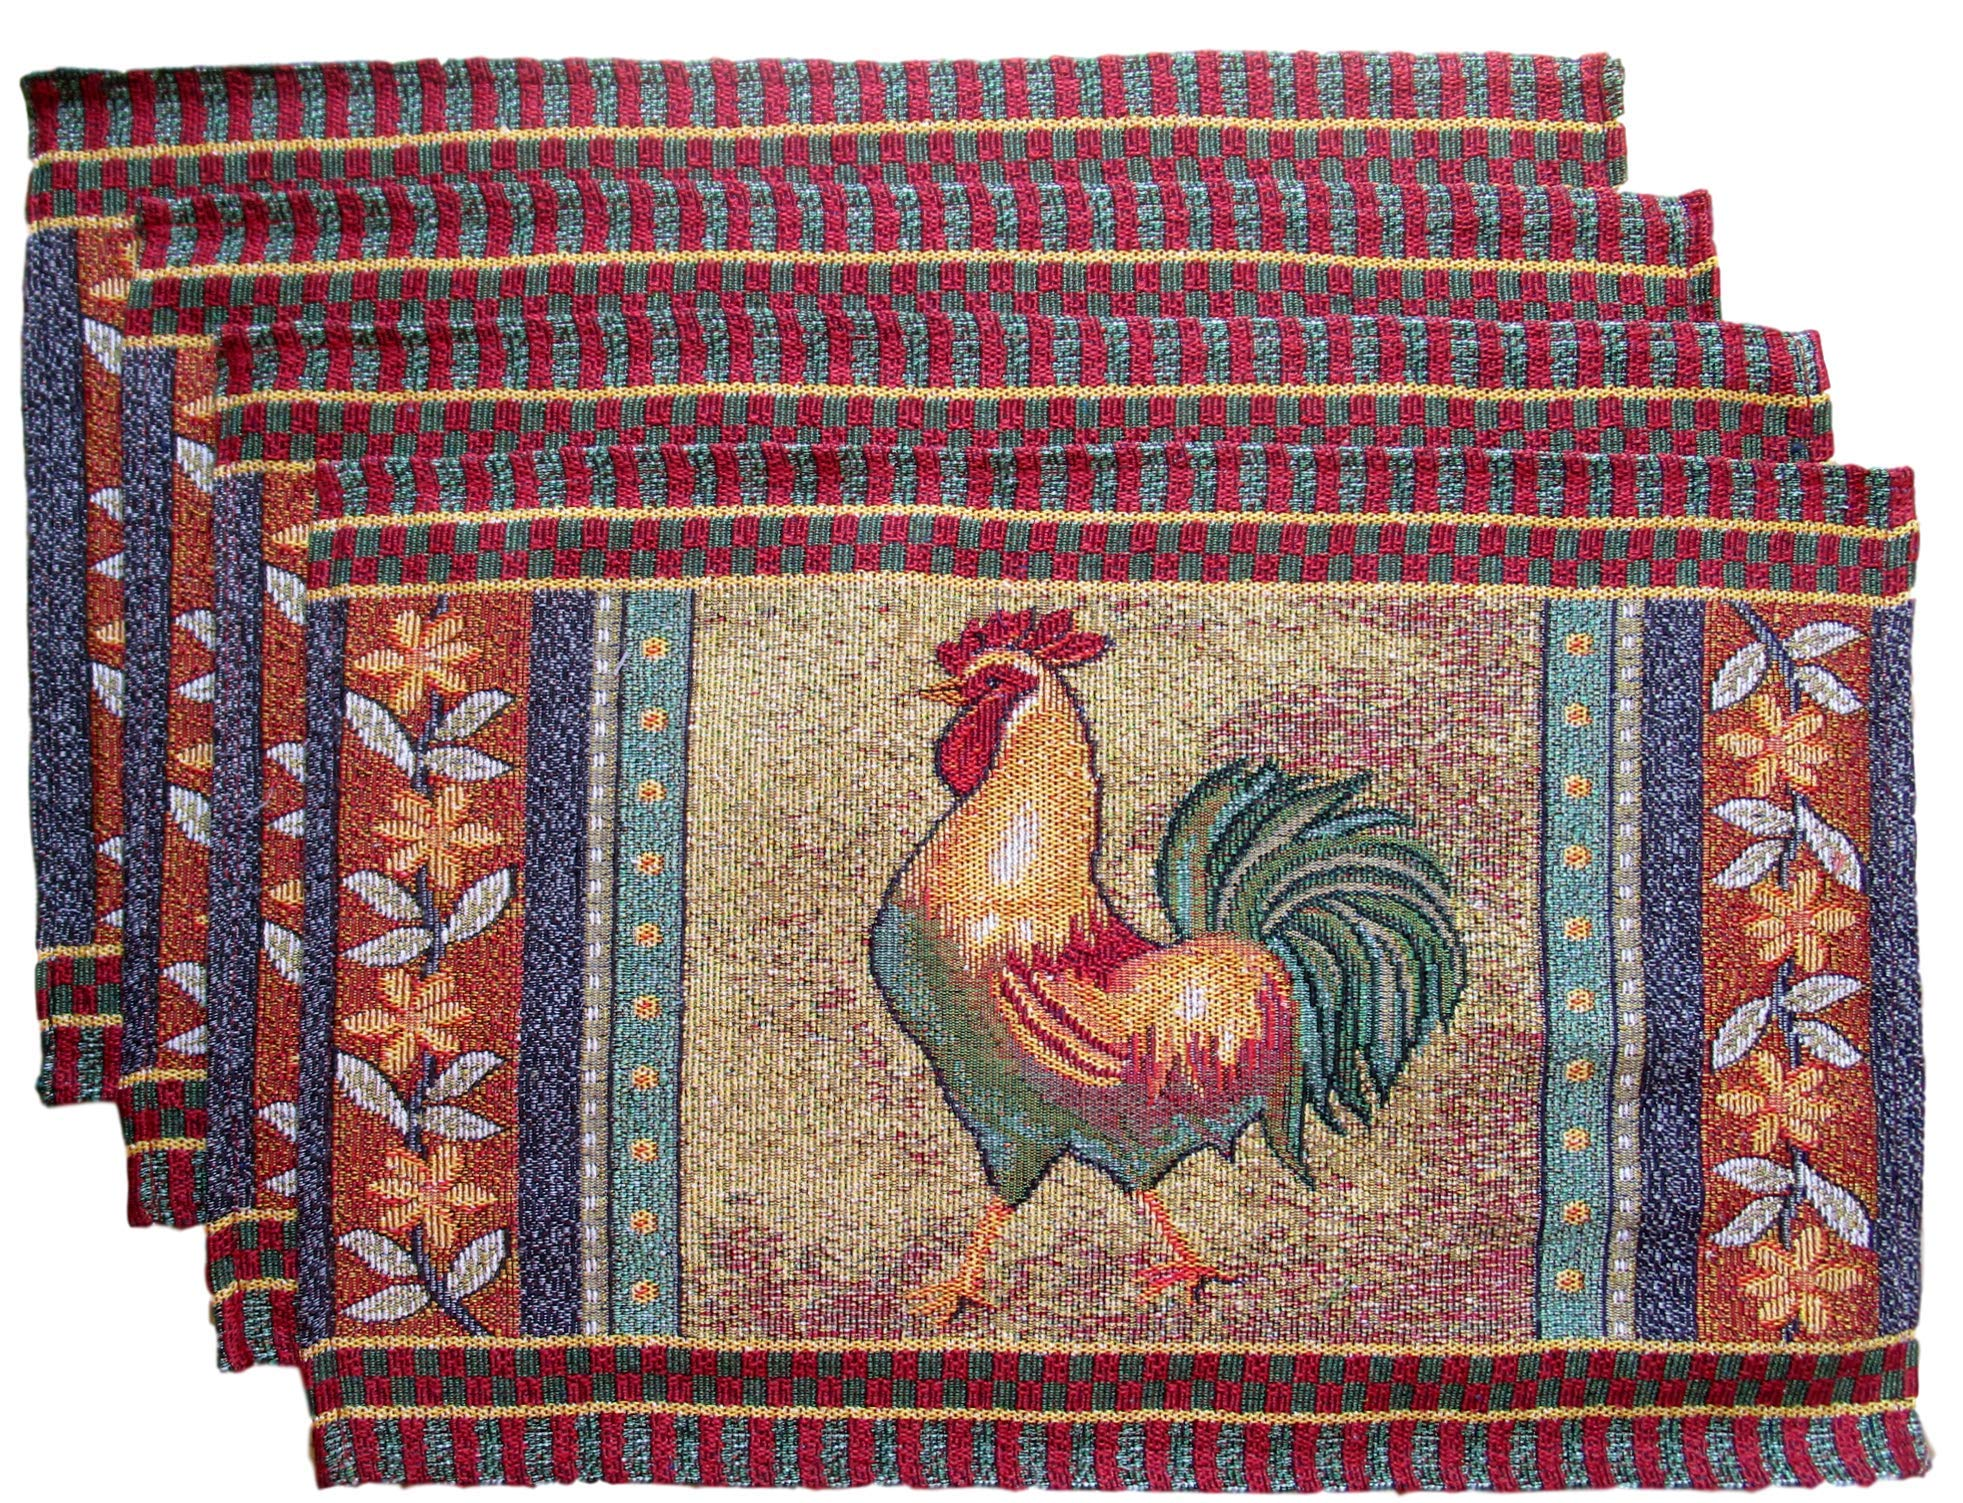 HomeConcepts Farm to Table Woven Tapestry Place Mats - Roosters on Barn Board (Golden Rooster with Yellow Flowers)